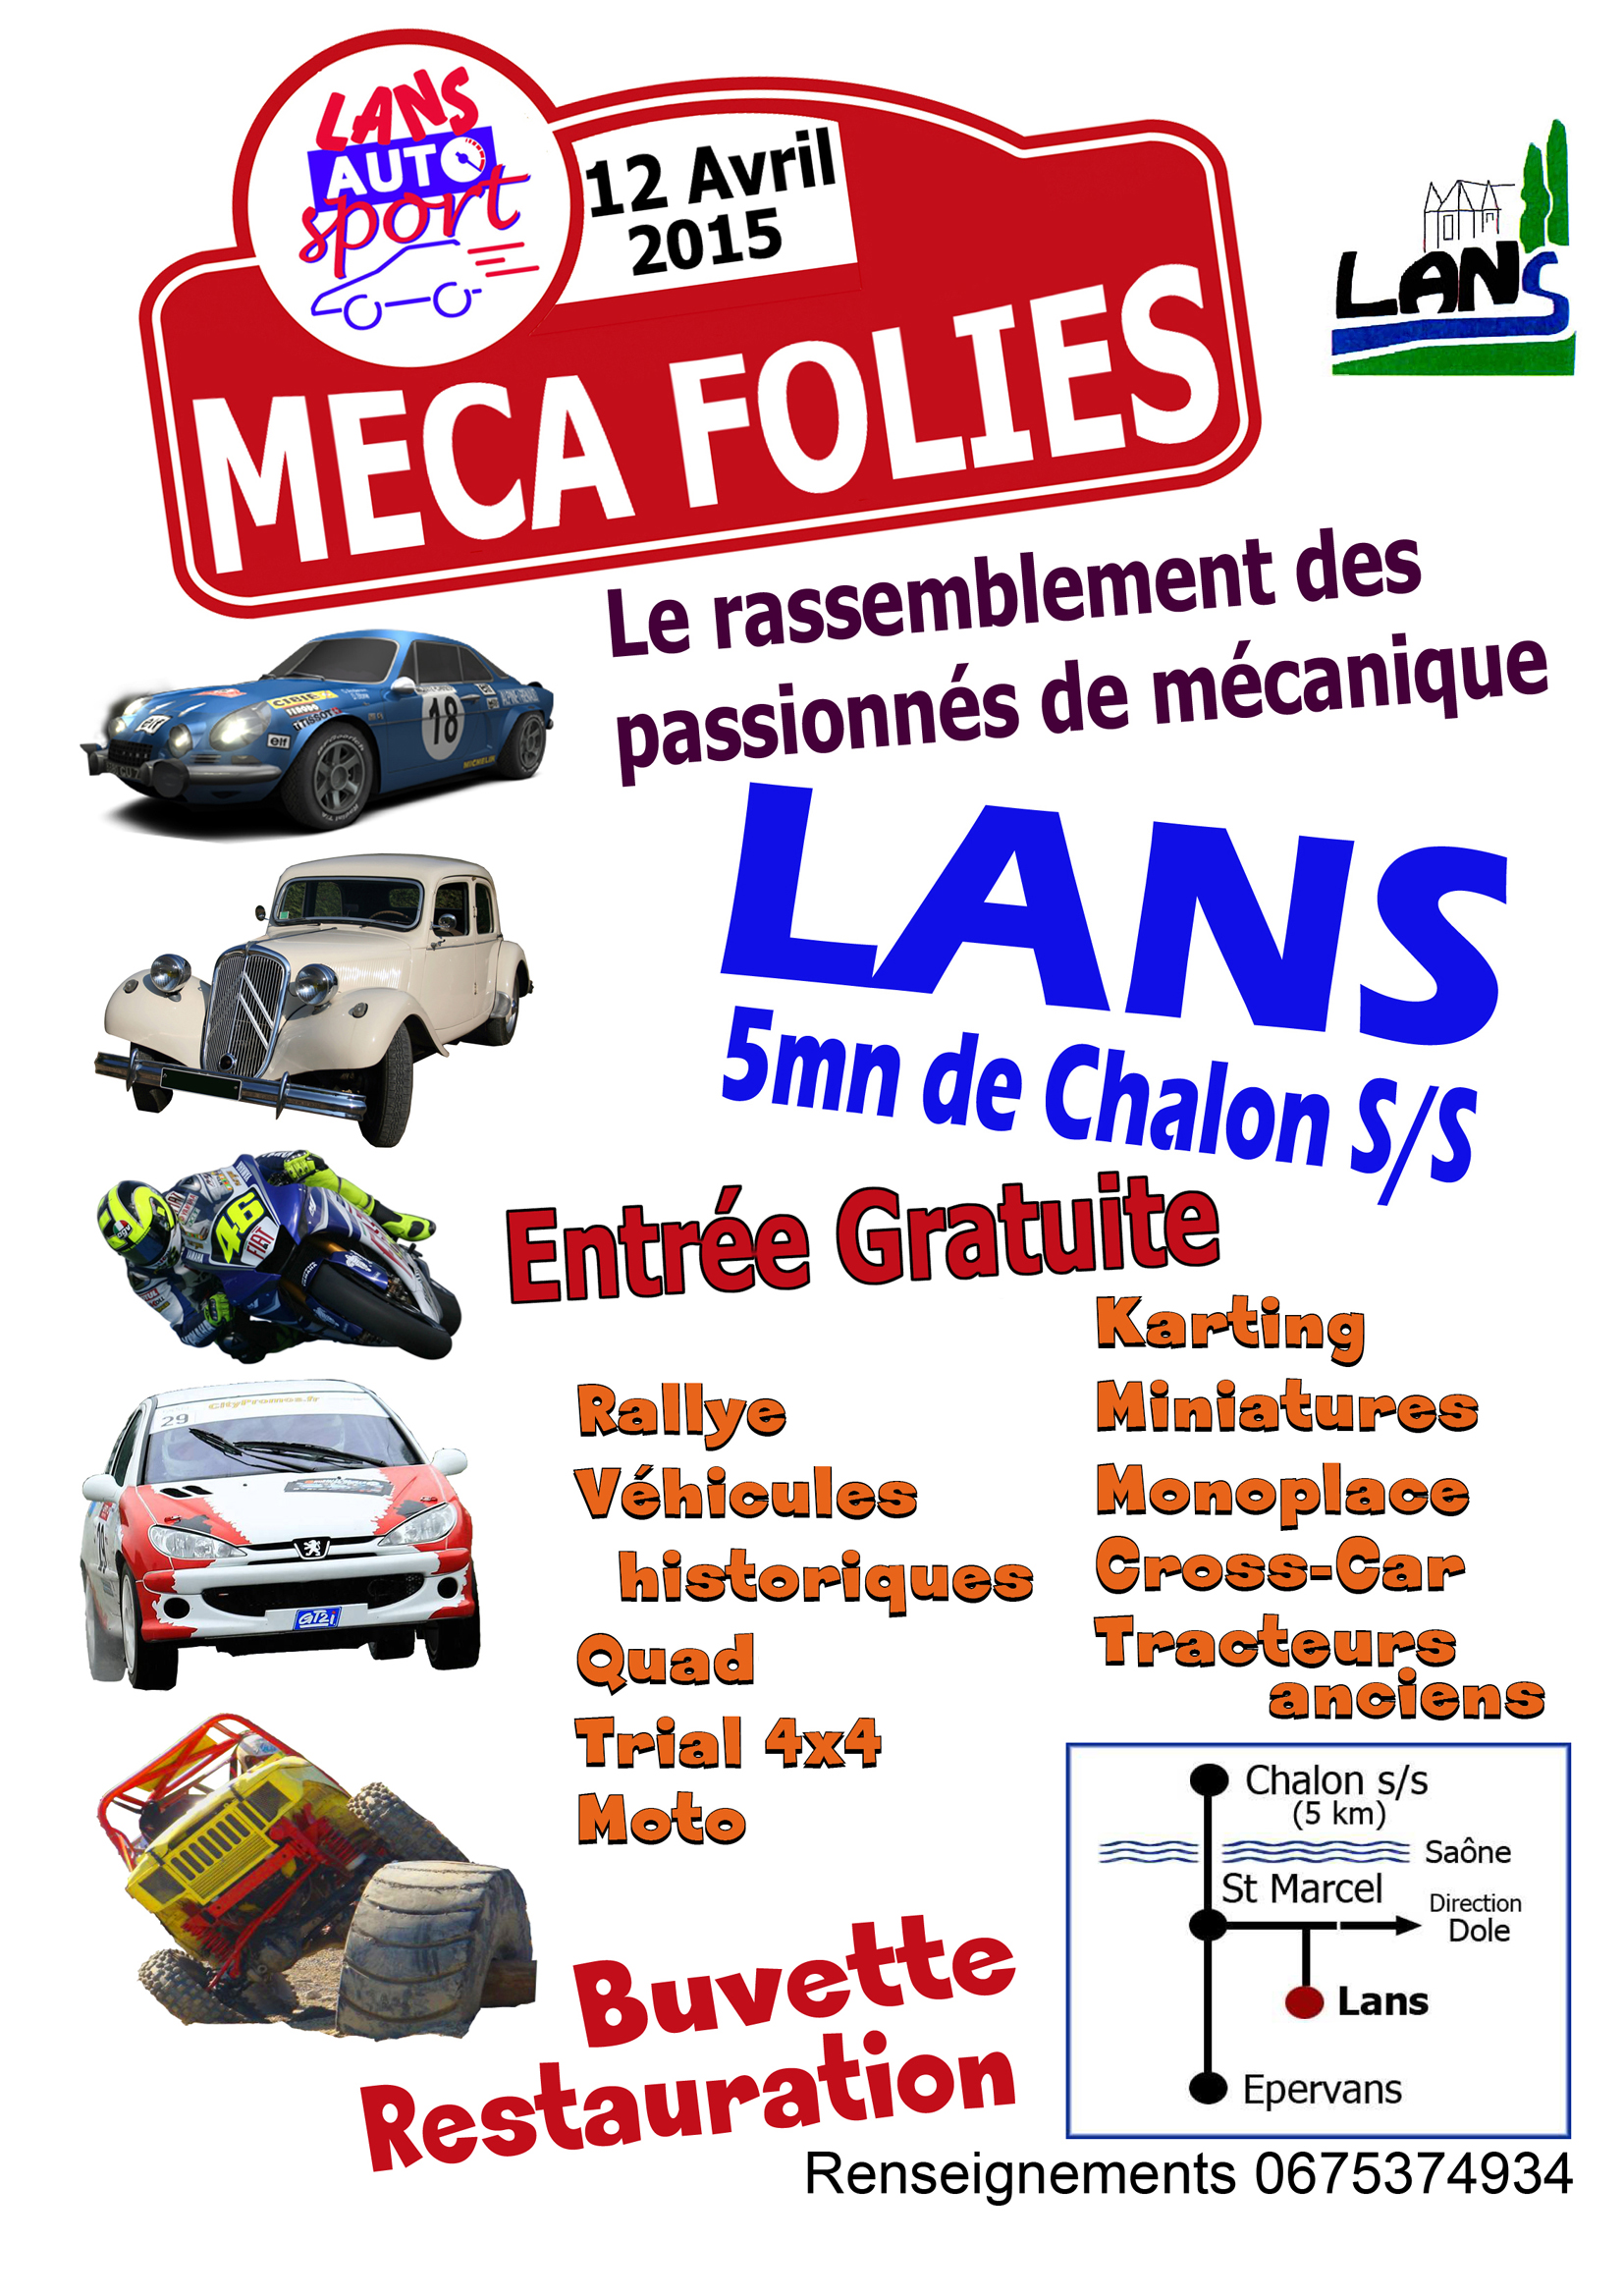 [71][12 avril 2015] MECA FOLIES Affiche_MF